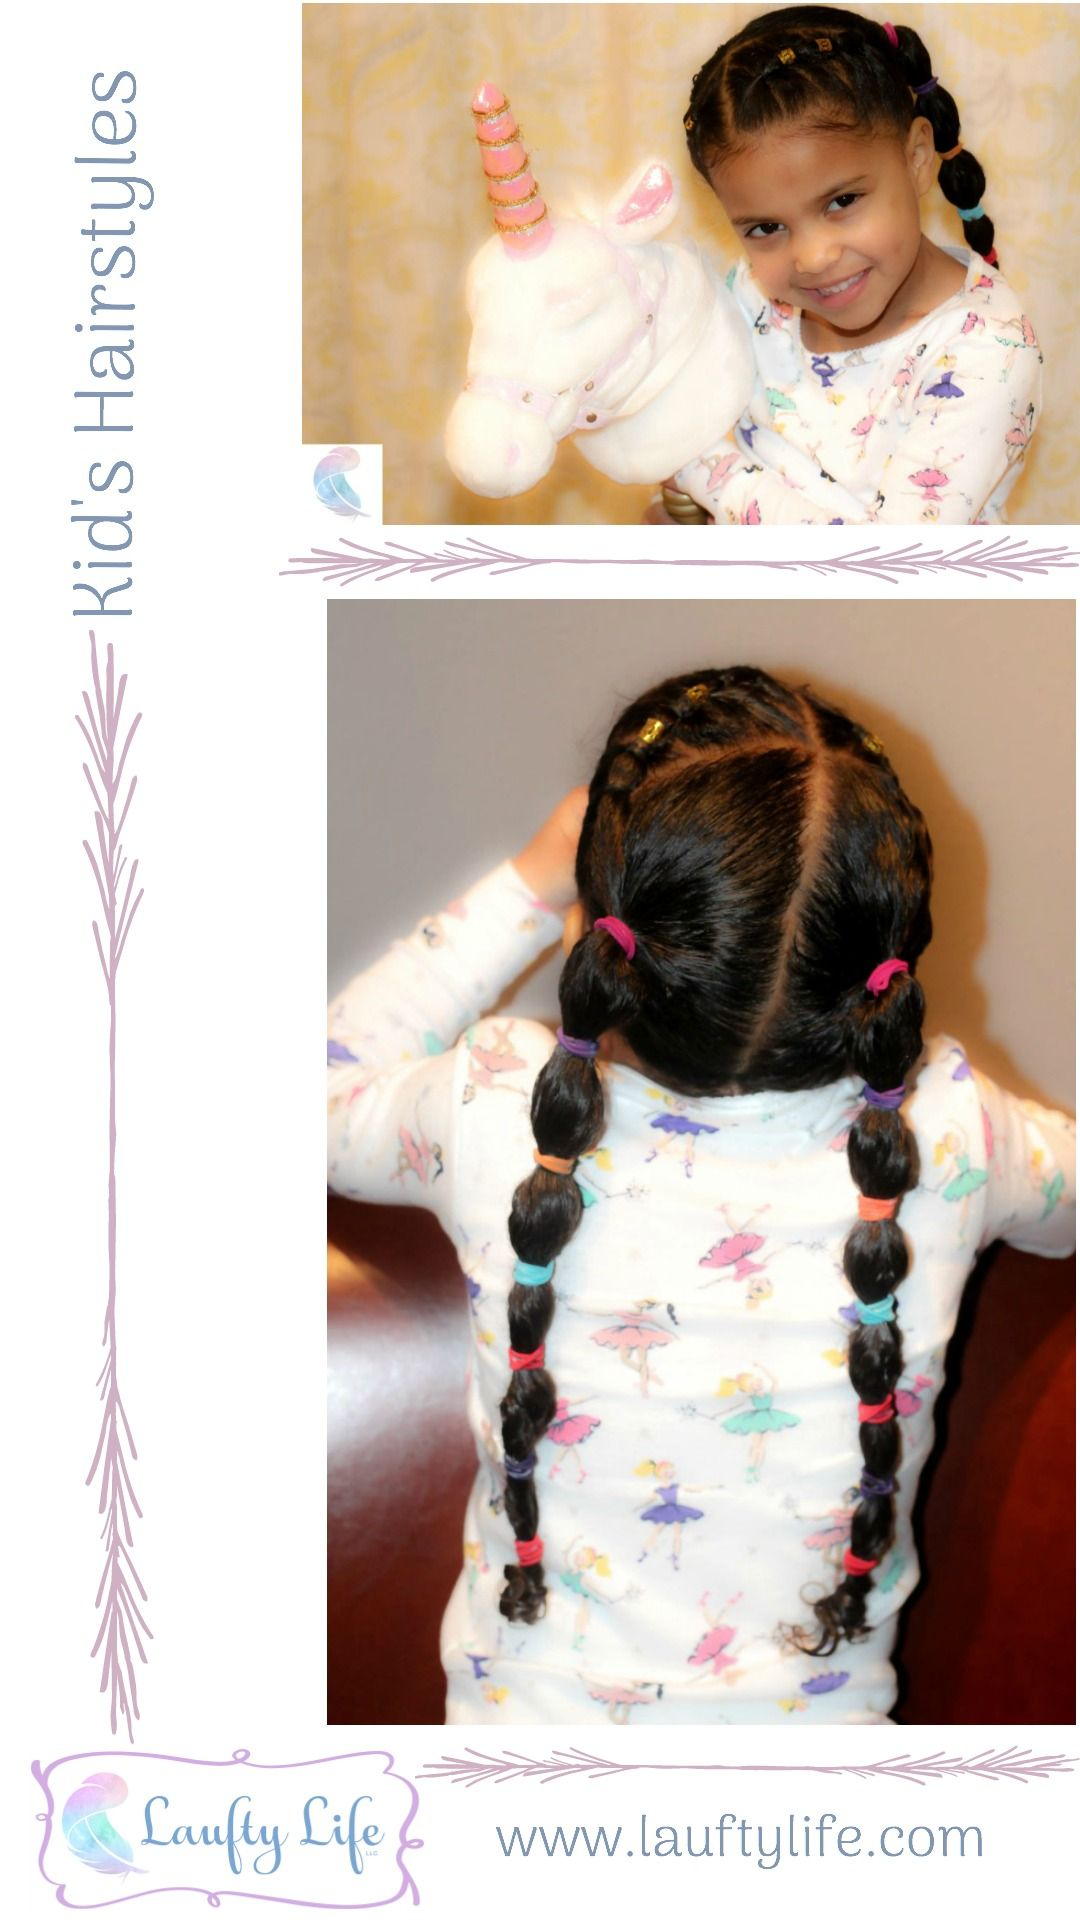 Cute kids hairstyle for girls new styles every week on the blog